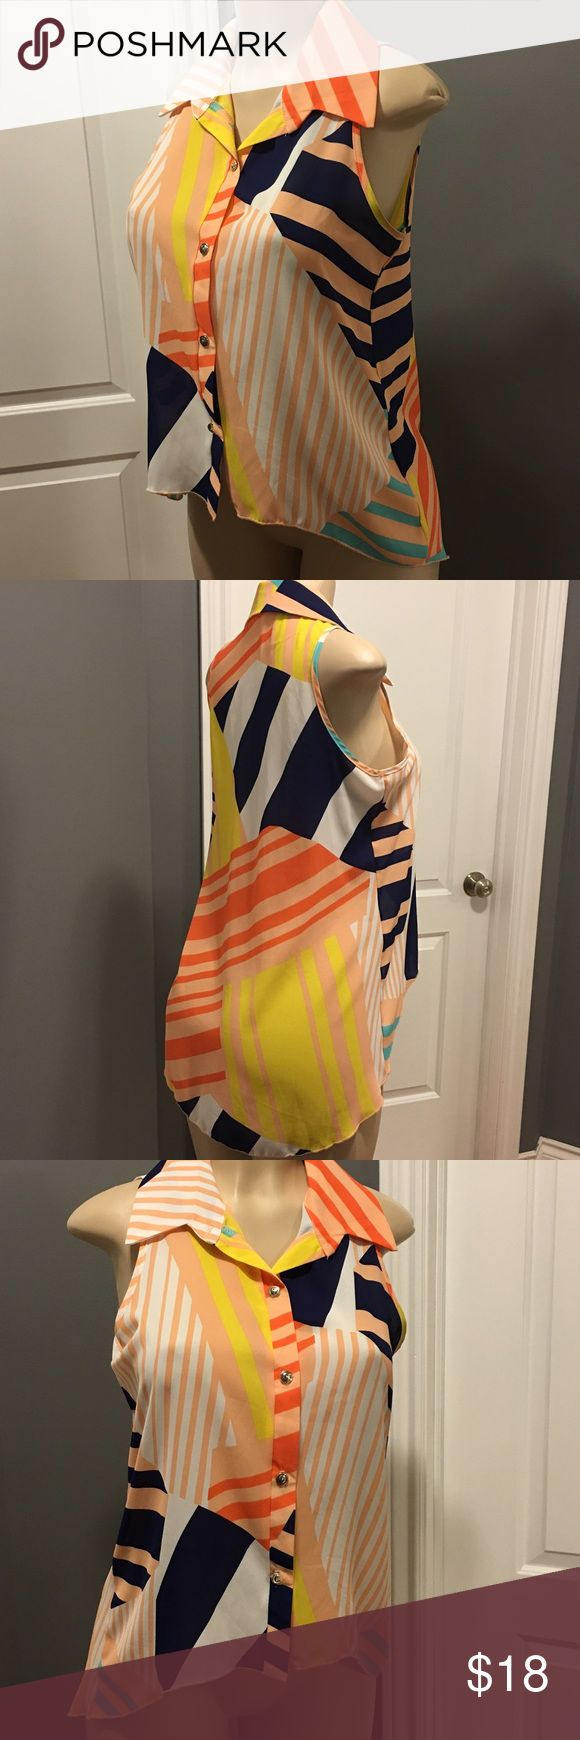 HighLow Top/Blouse. NWOT Beach Wrinkle Free Sz Small. Great summer style. For a great summer outfit, just add the Teal Shinestar Jeggings! Body Central Tops Blouses